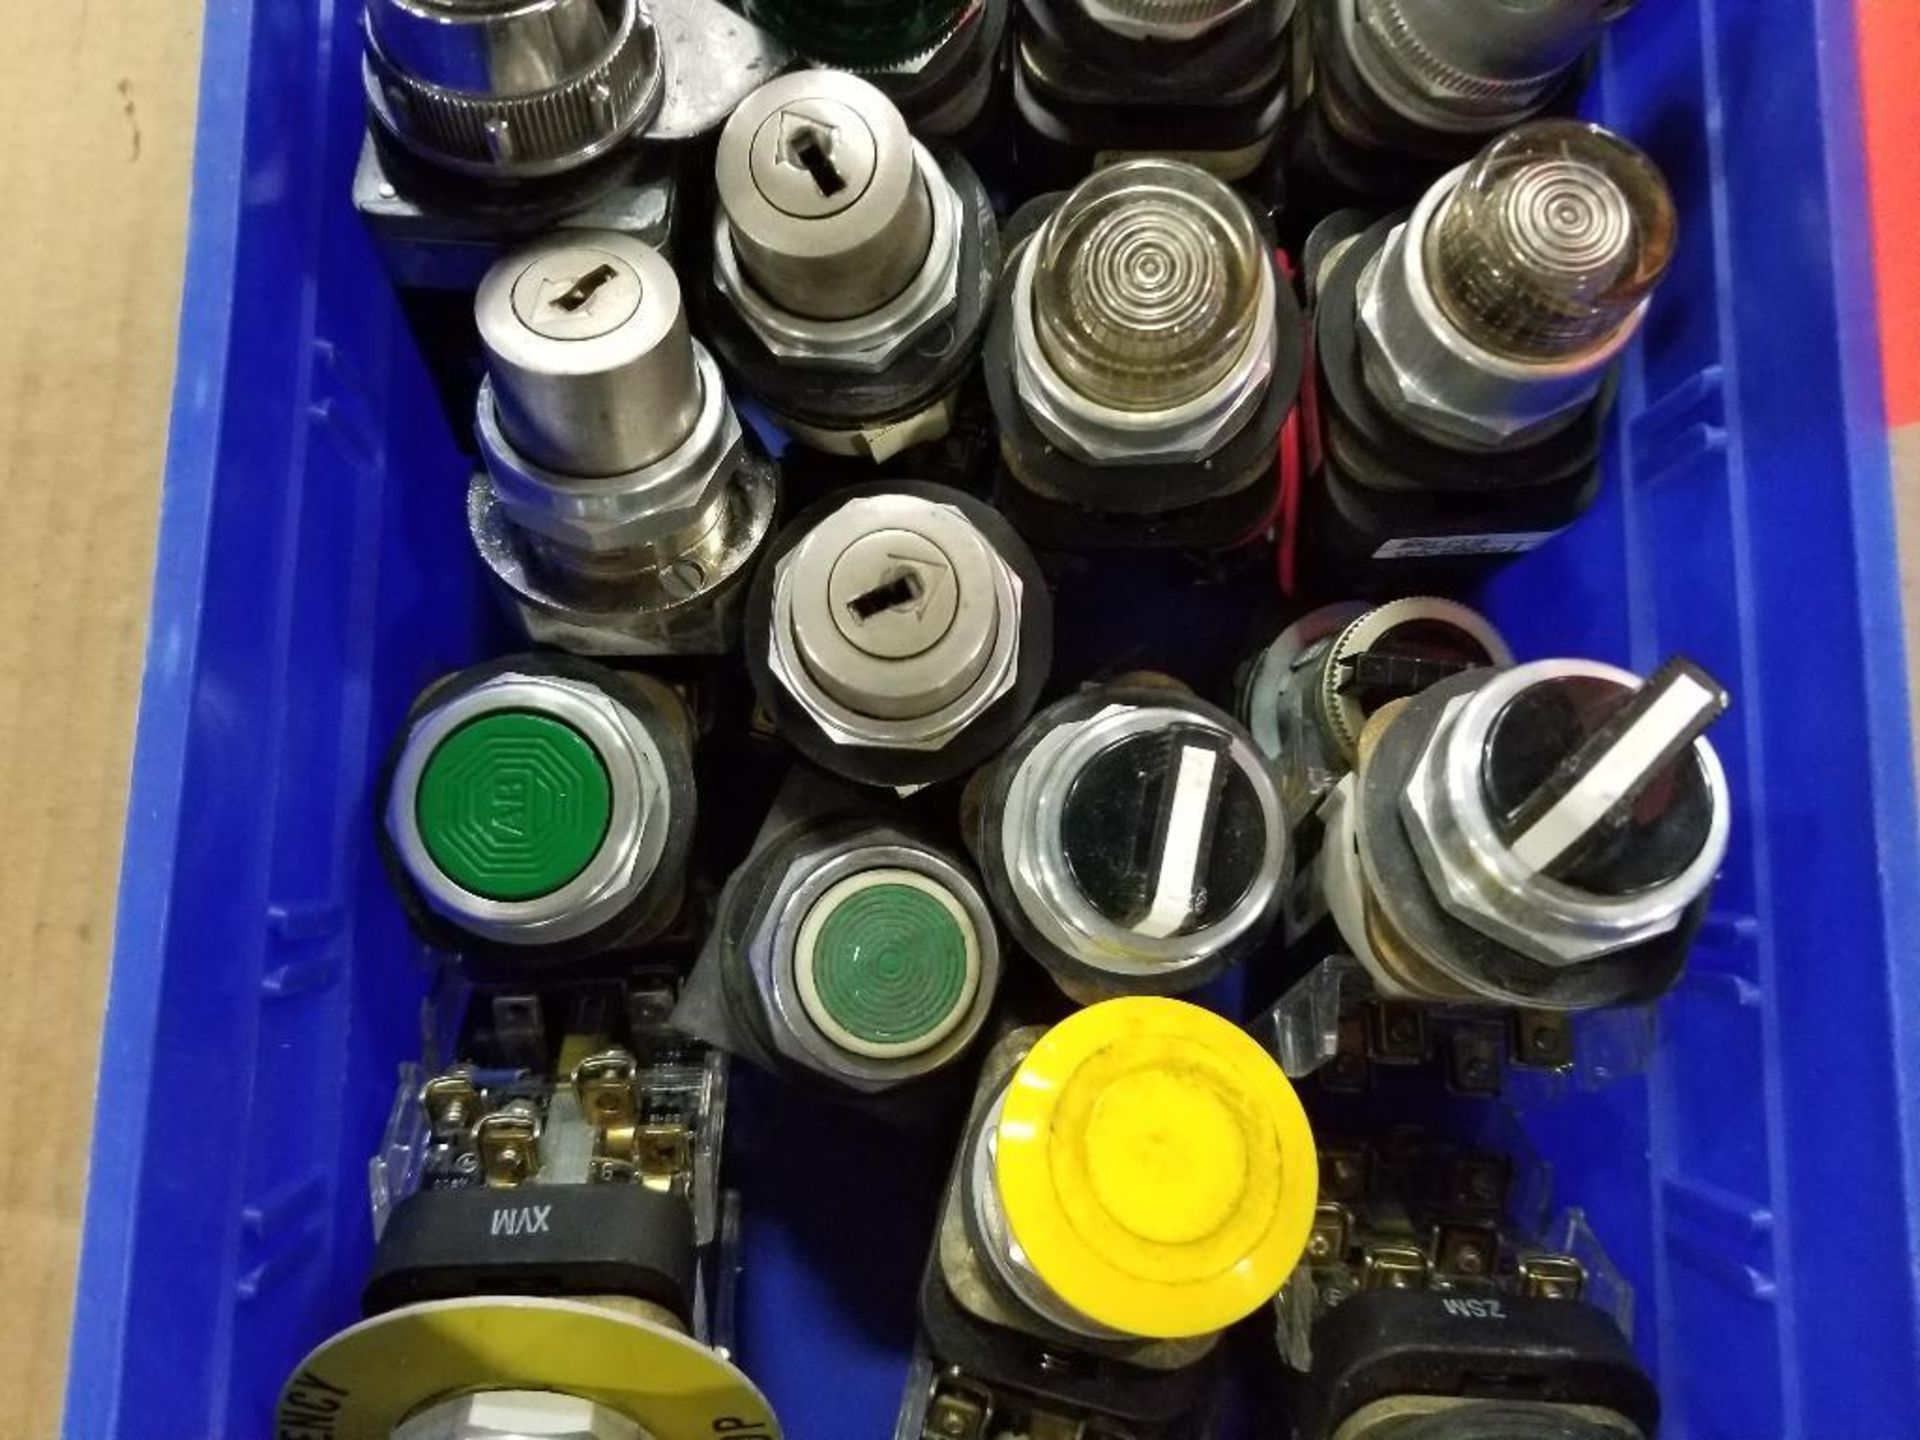 Assorted electrical switches, pushbuttons. - Image 3 of 5